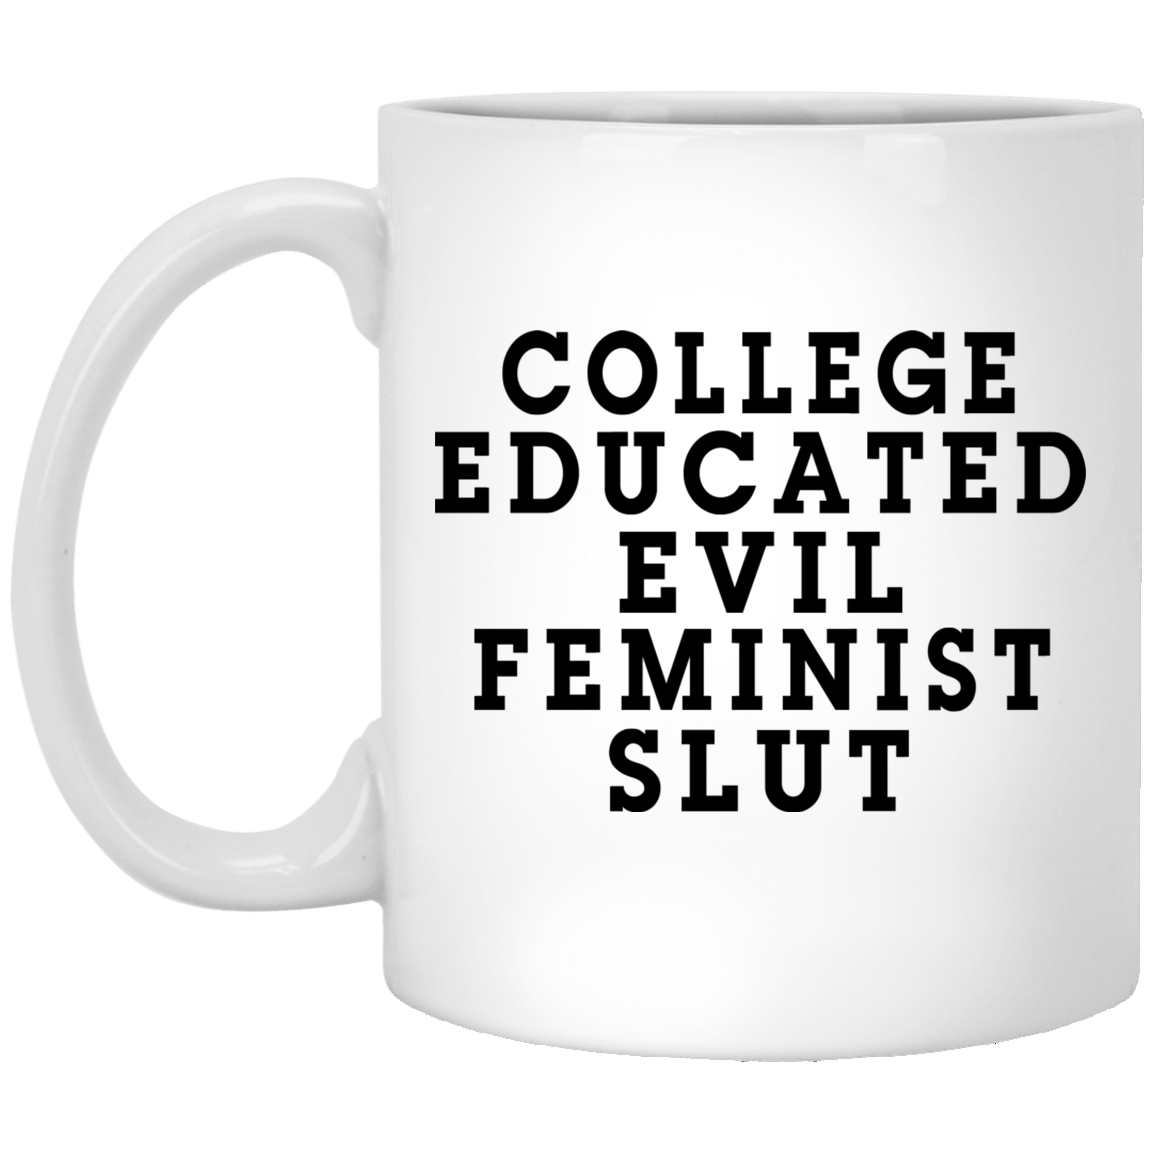 College Educated Evil Feminist Slut Mug 1005-9786-87283846-47417 - Tee Ript